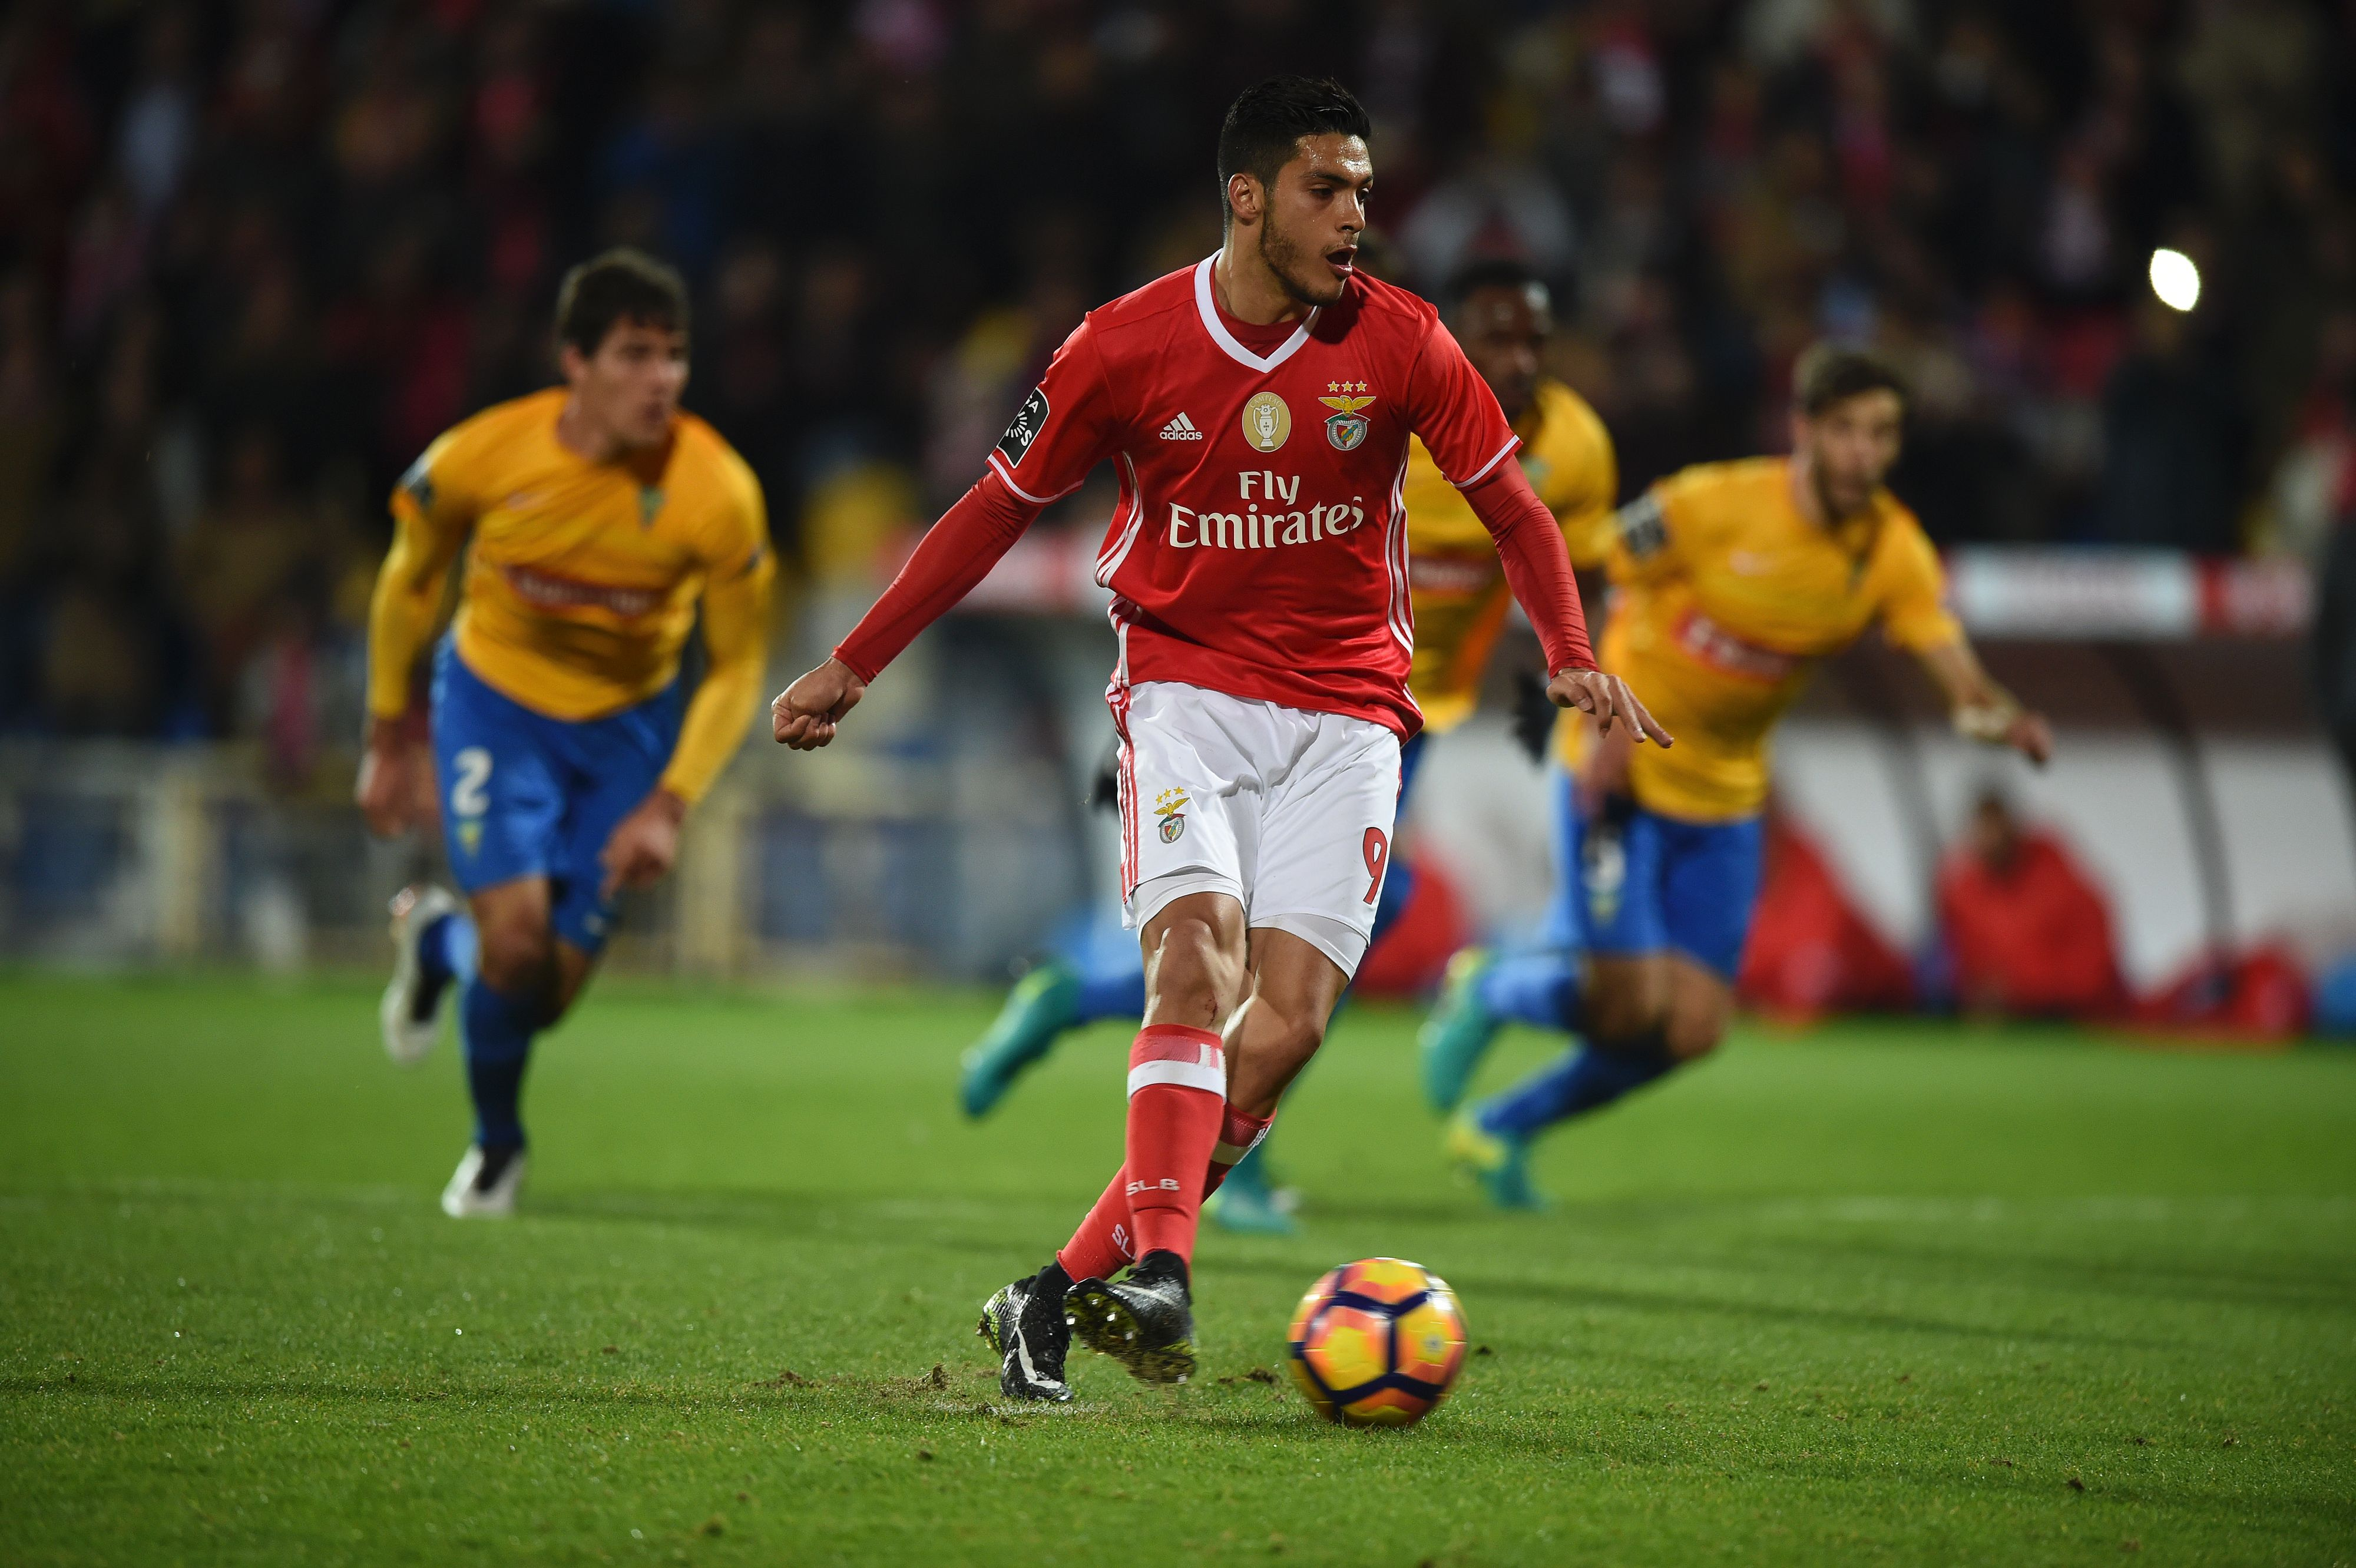 Jimenez was rarely a starter for Benfica